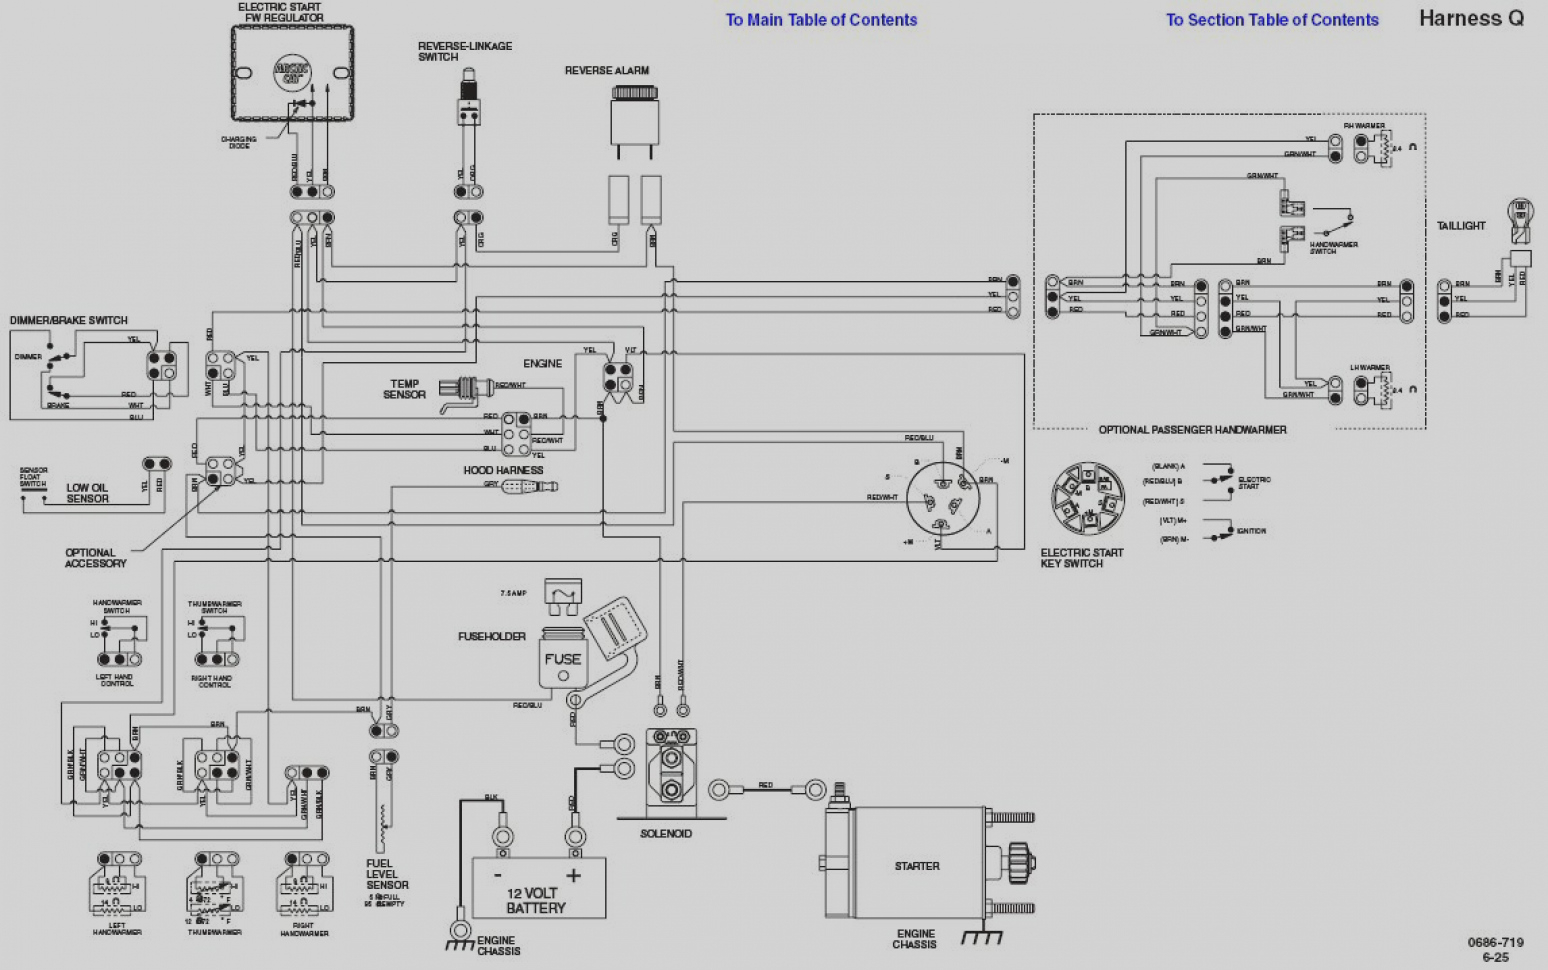 polaris rzr wiring diagram polaris rzr wiring diagram pro wiring diagram polaris rzr 1000 wiring diagram polaris rzr wiring diagram pro wiring